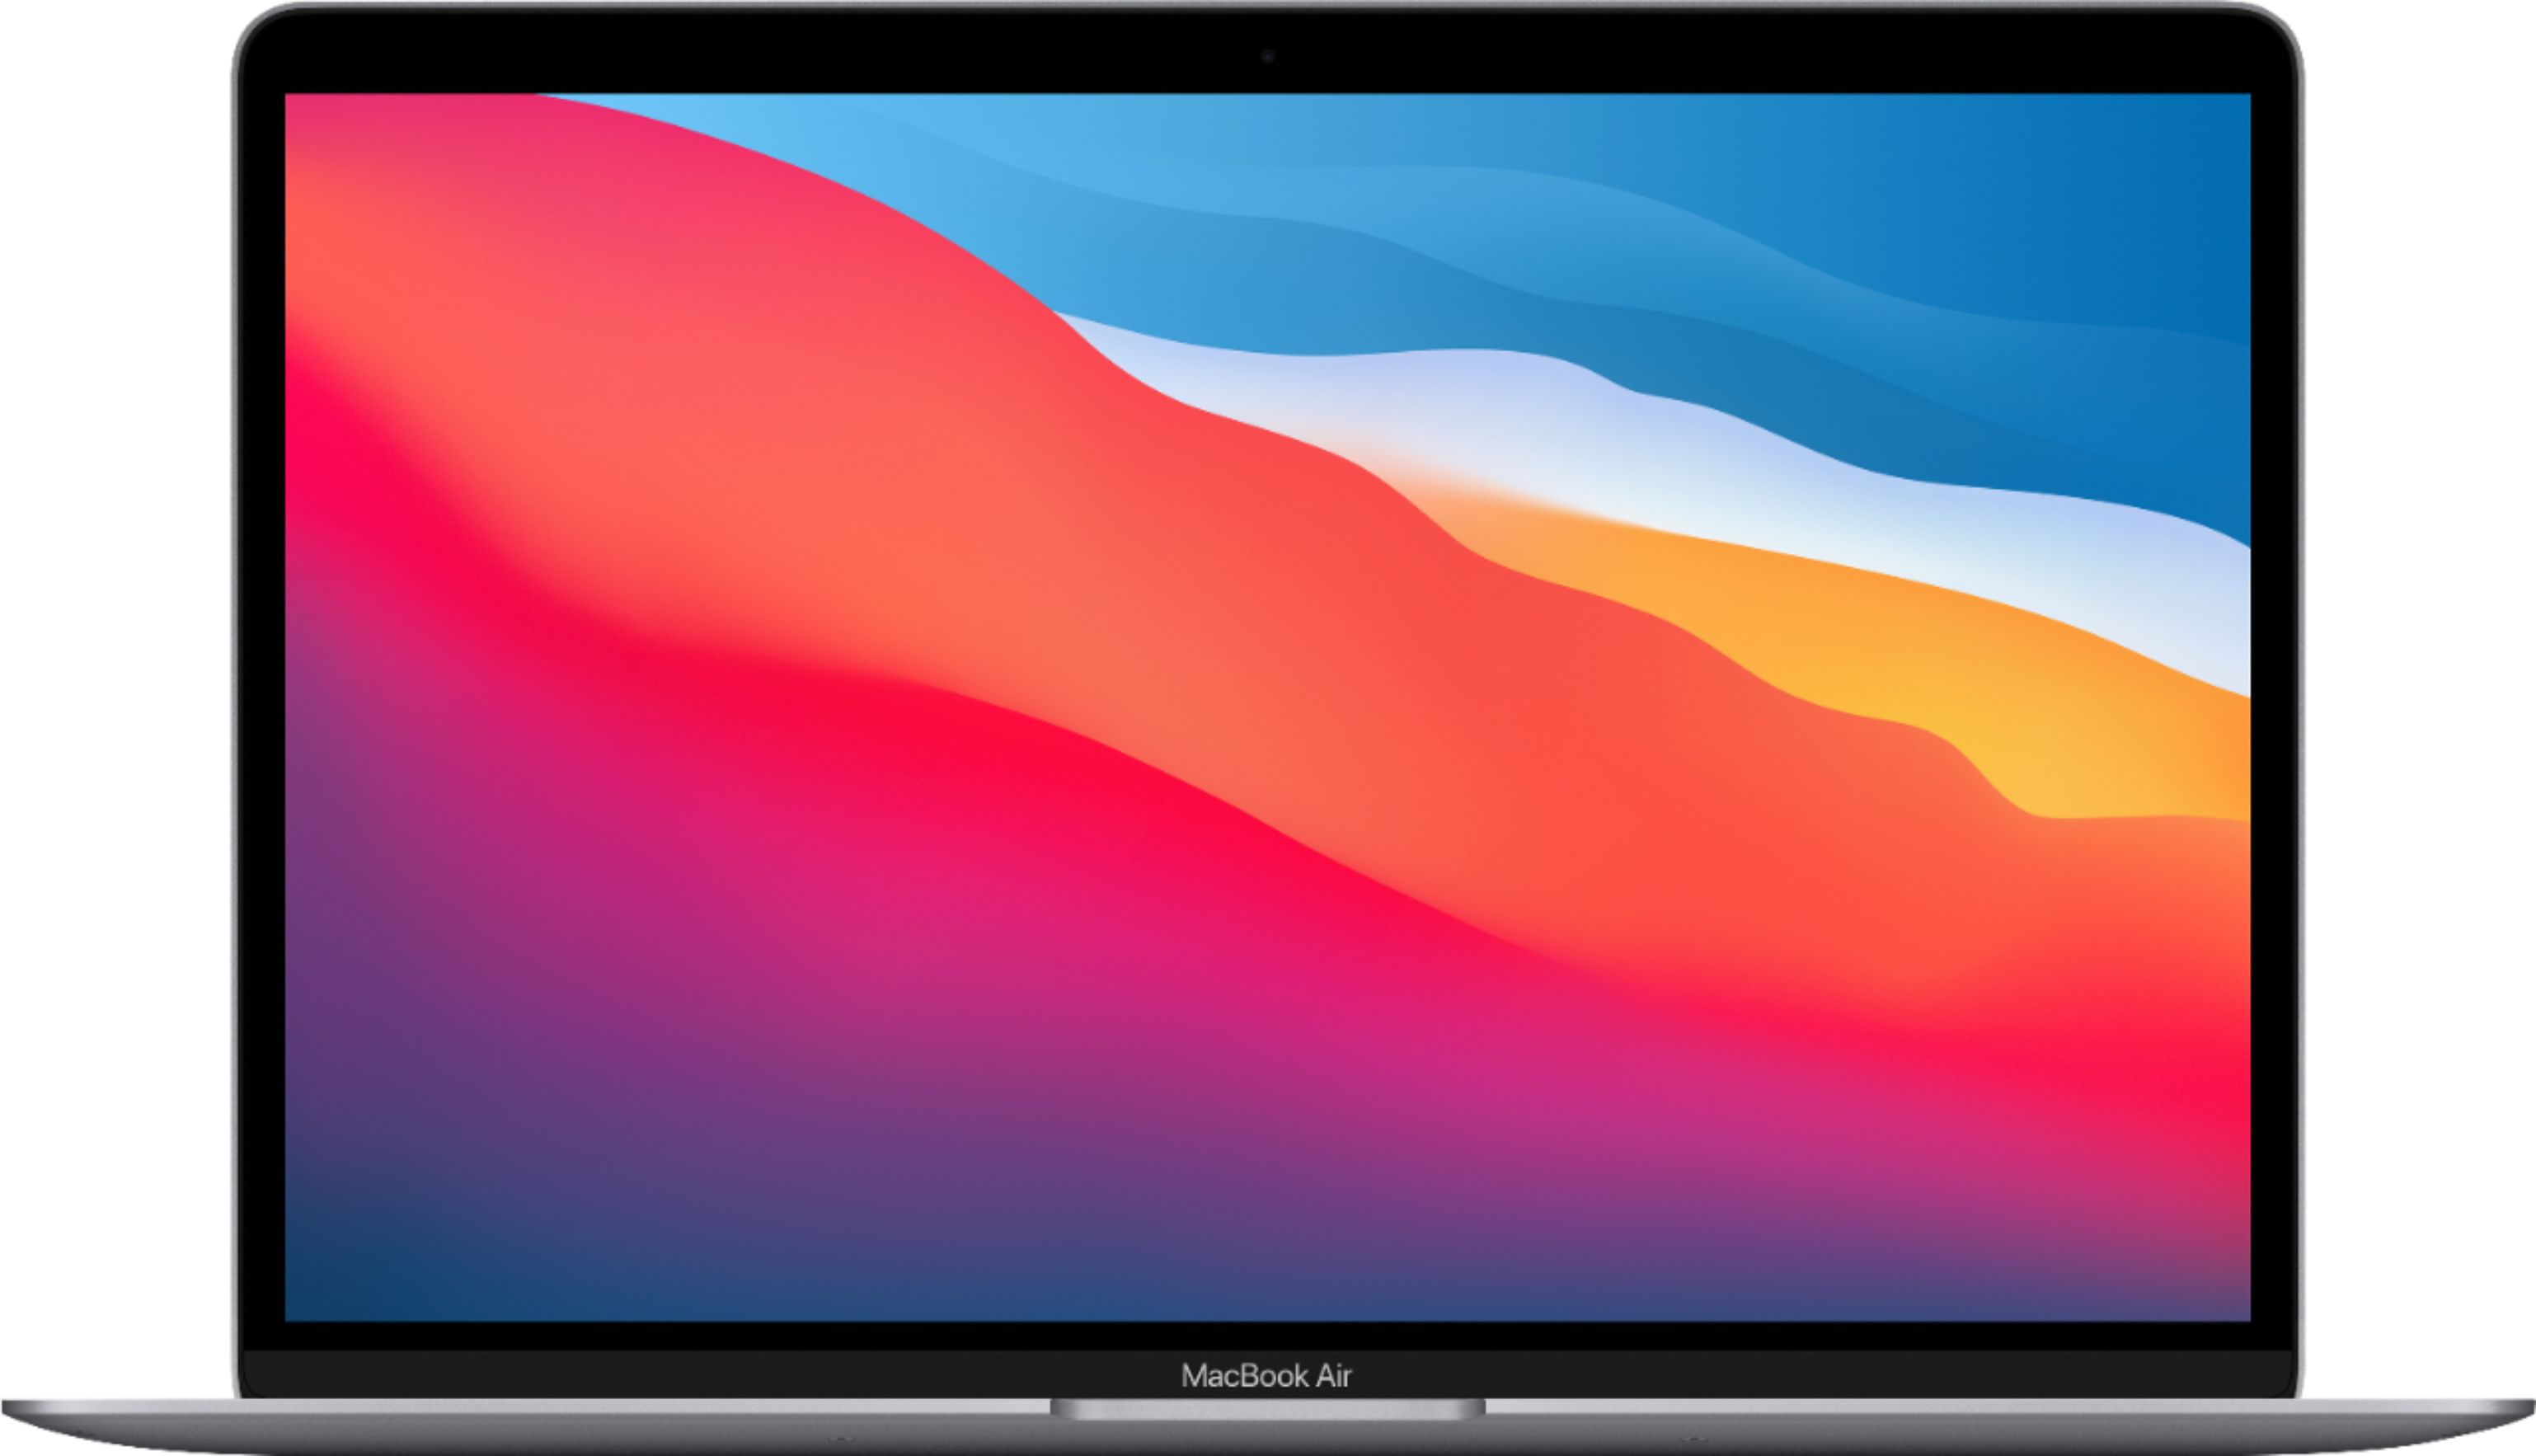 """Front Zoom. MacBook Air 13.3"""" Laptop - Apple M1 chip - 8GB Memory - 256GB SSD (Latest Model) - Space Gray."""